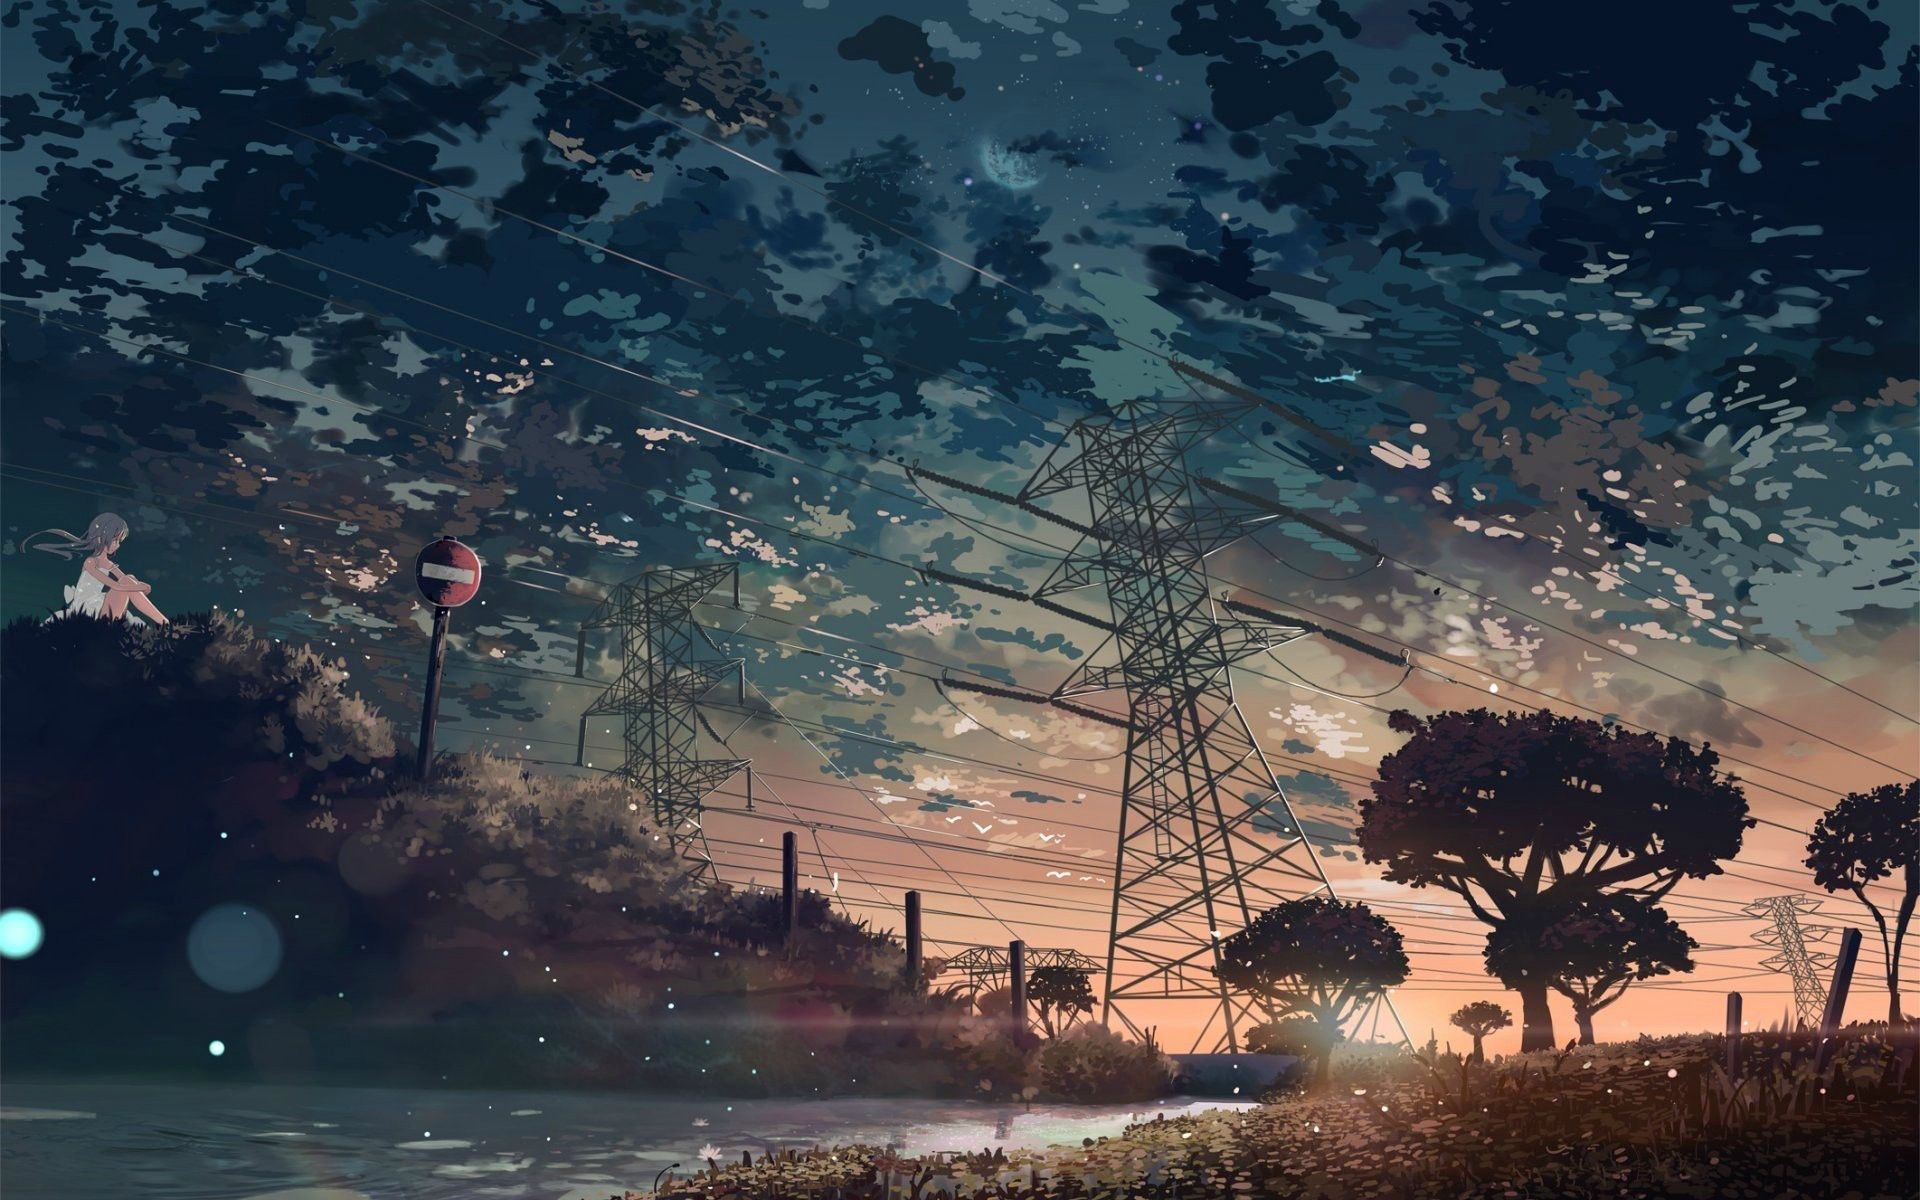 Scenery wallpaper, Anime scenery ...